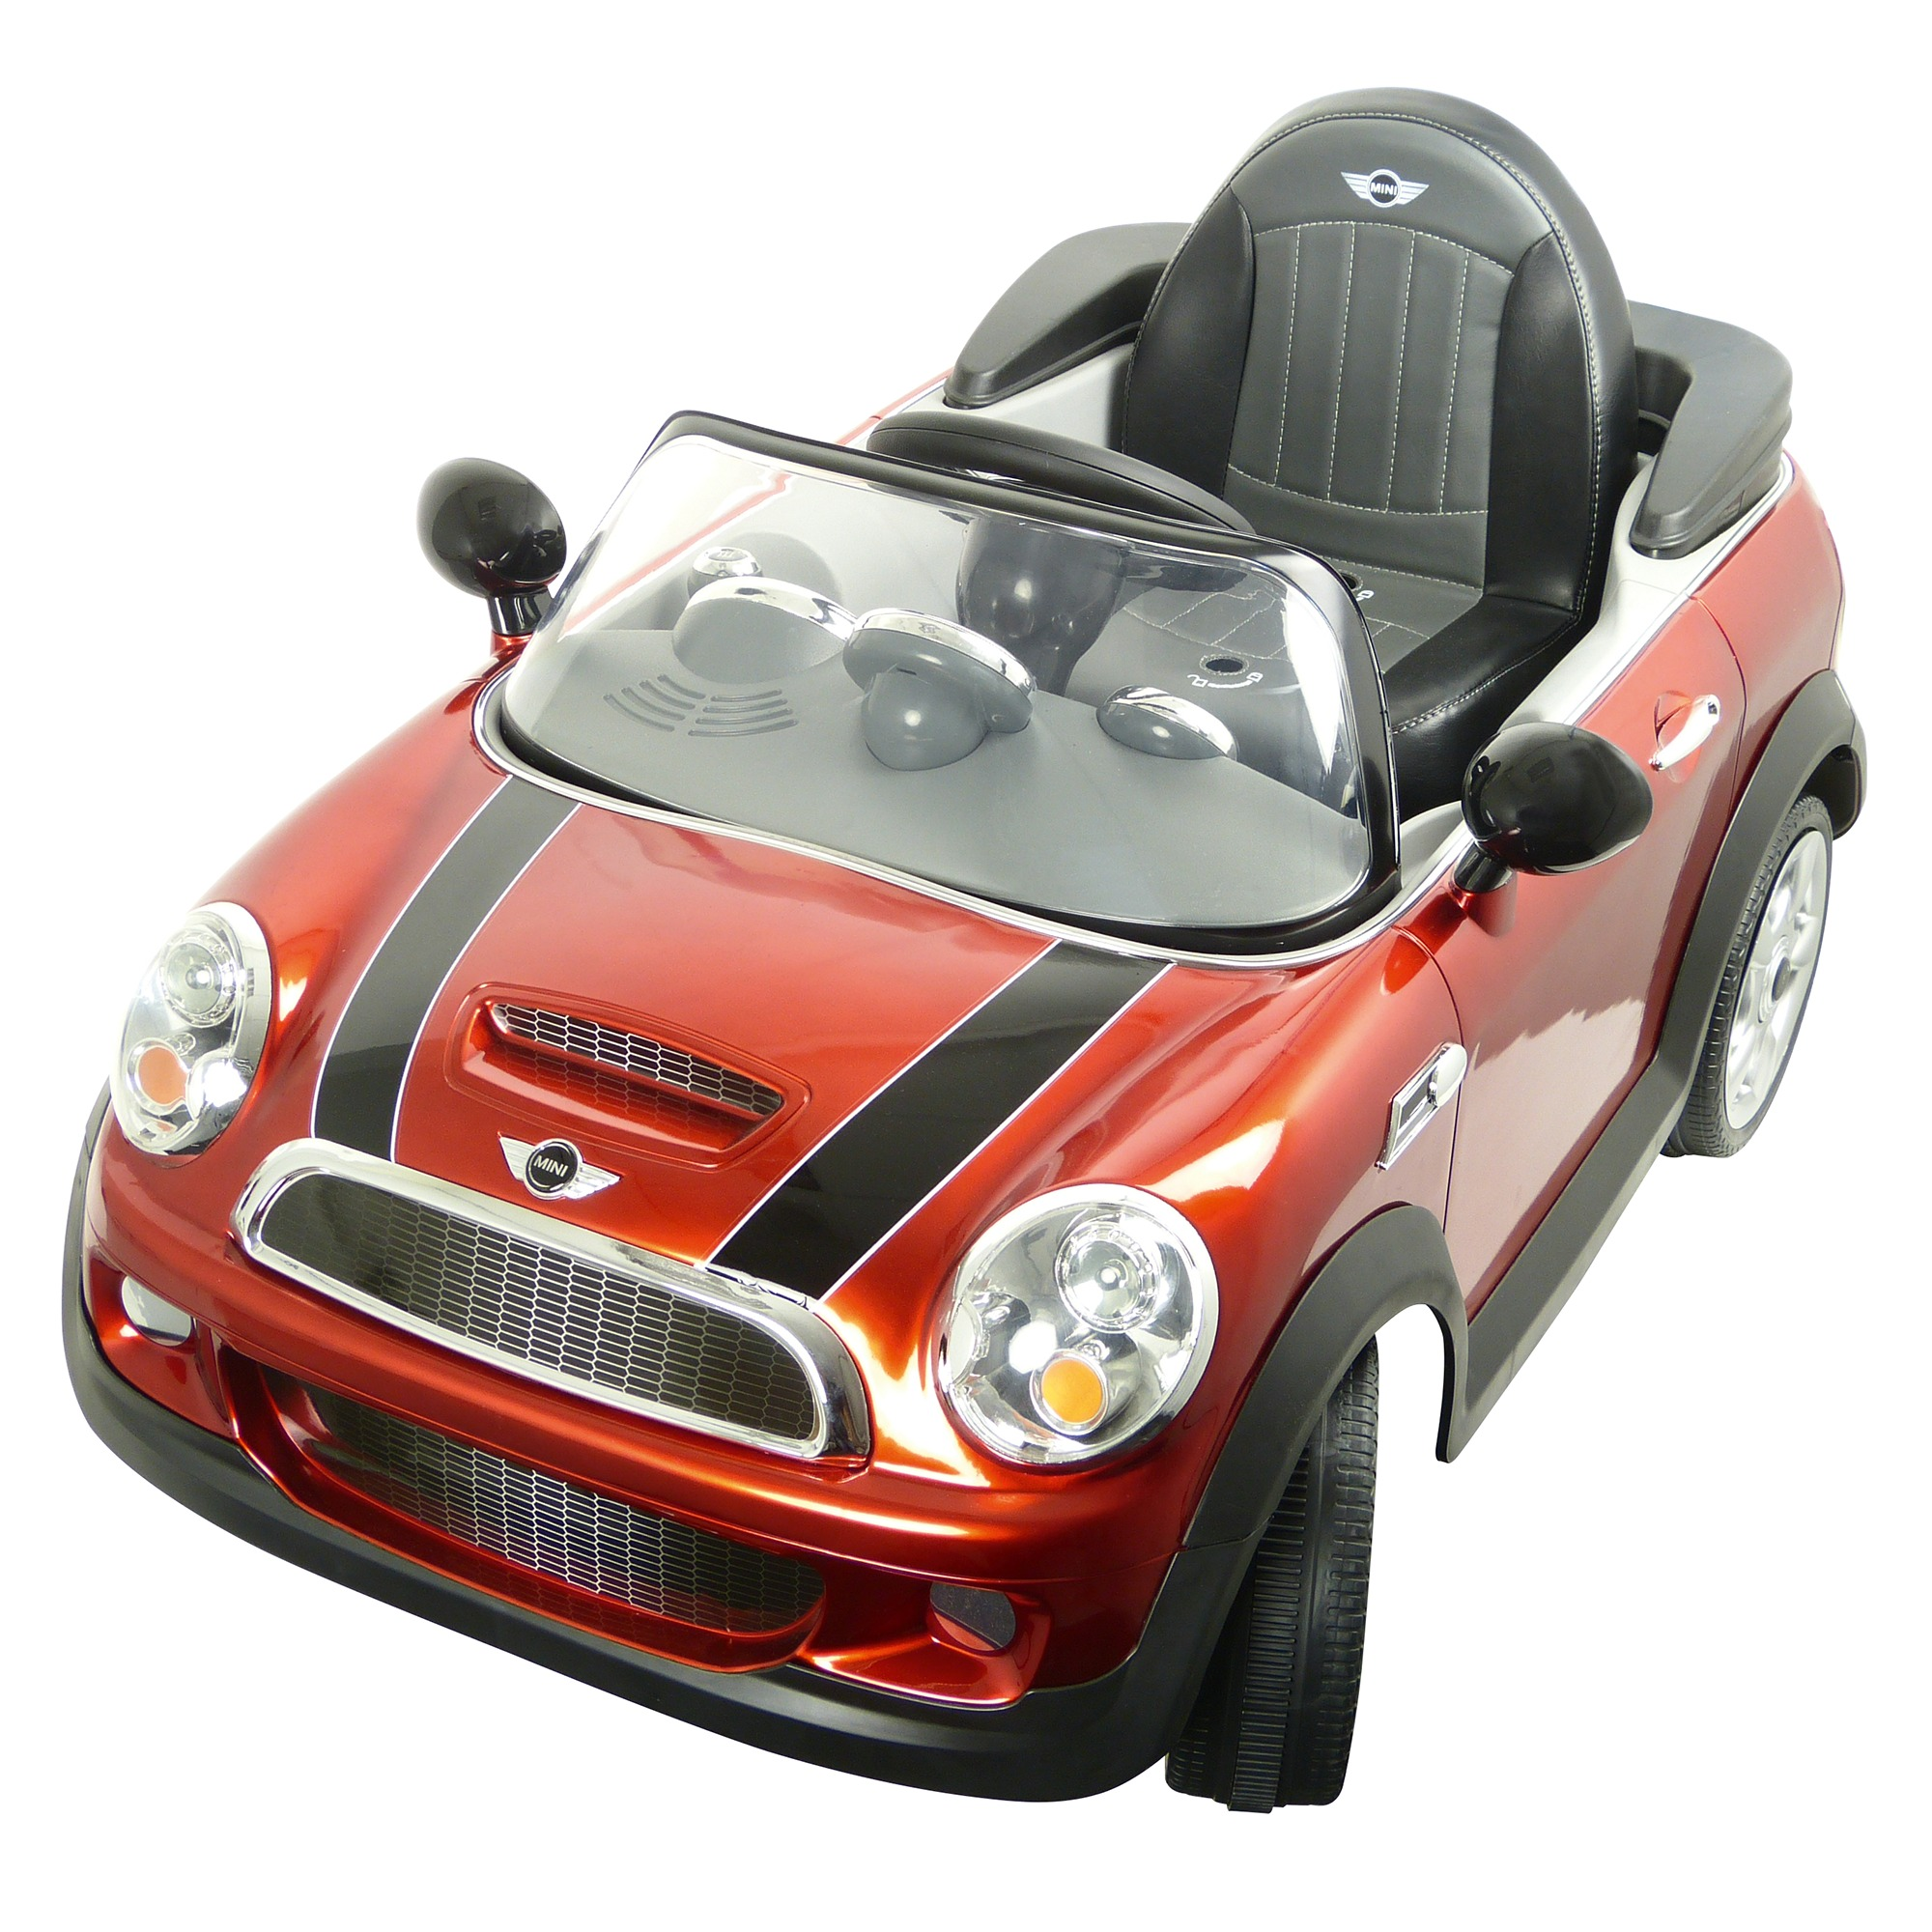 mini cooper sur accu pour enfants cadeaux cadeaux. Black Bedroom Furniture Sets. Home Design Ideas